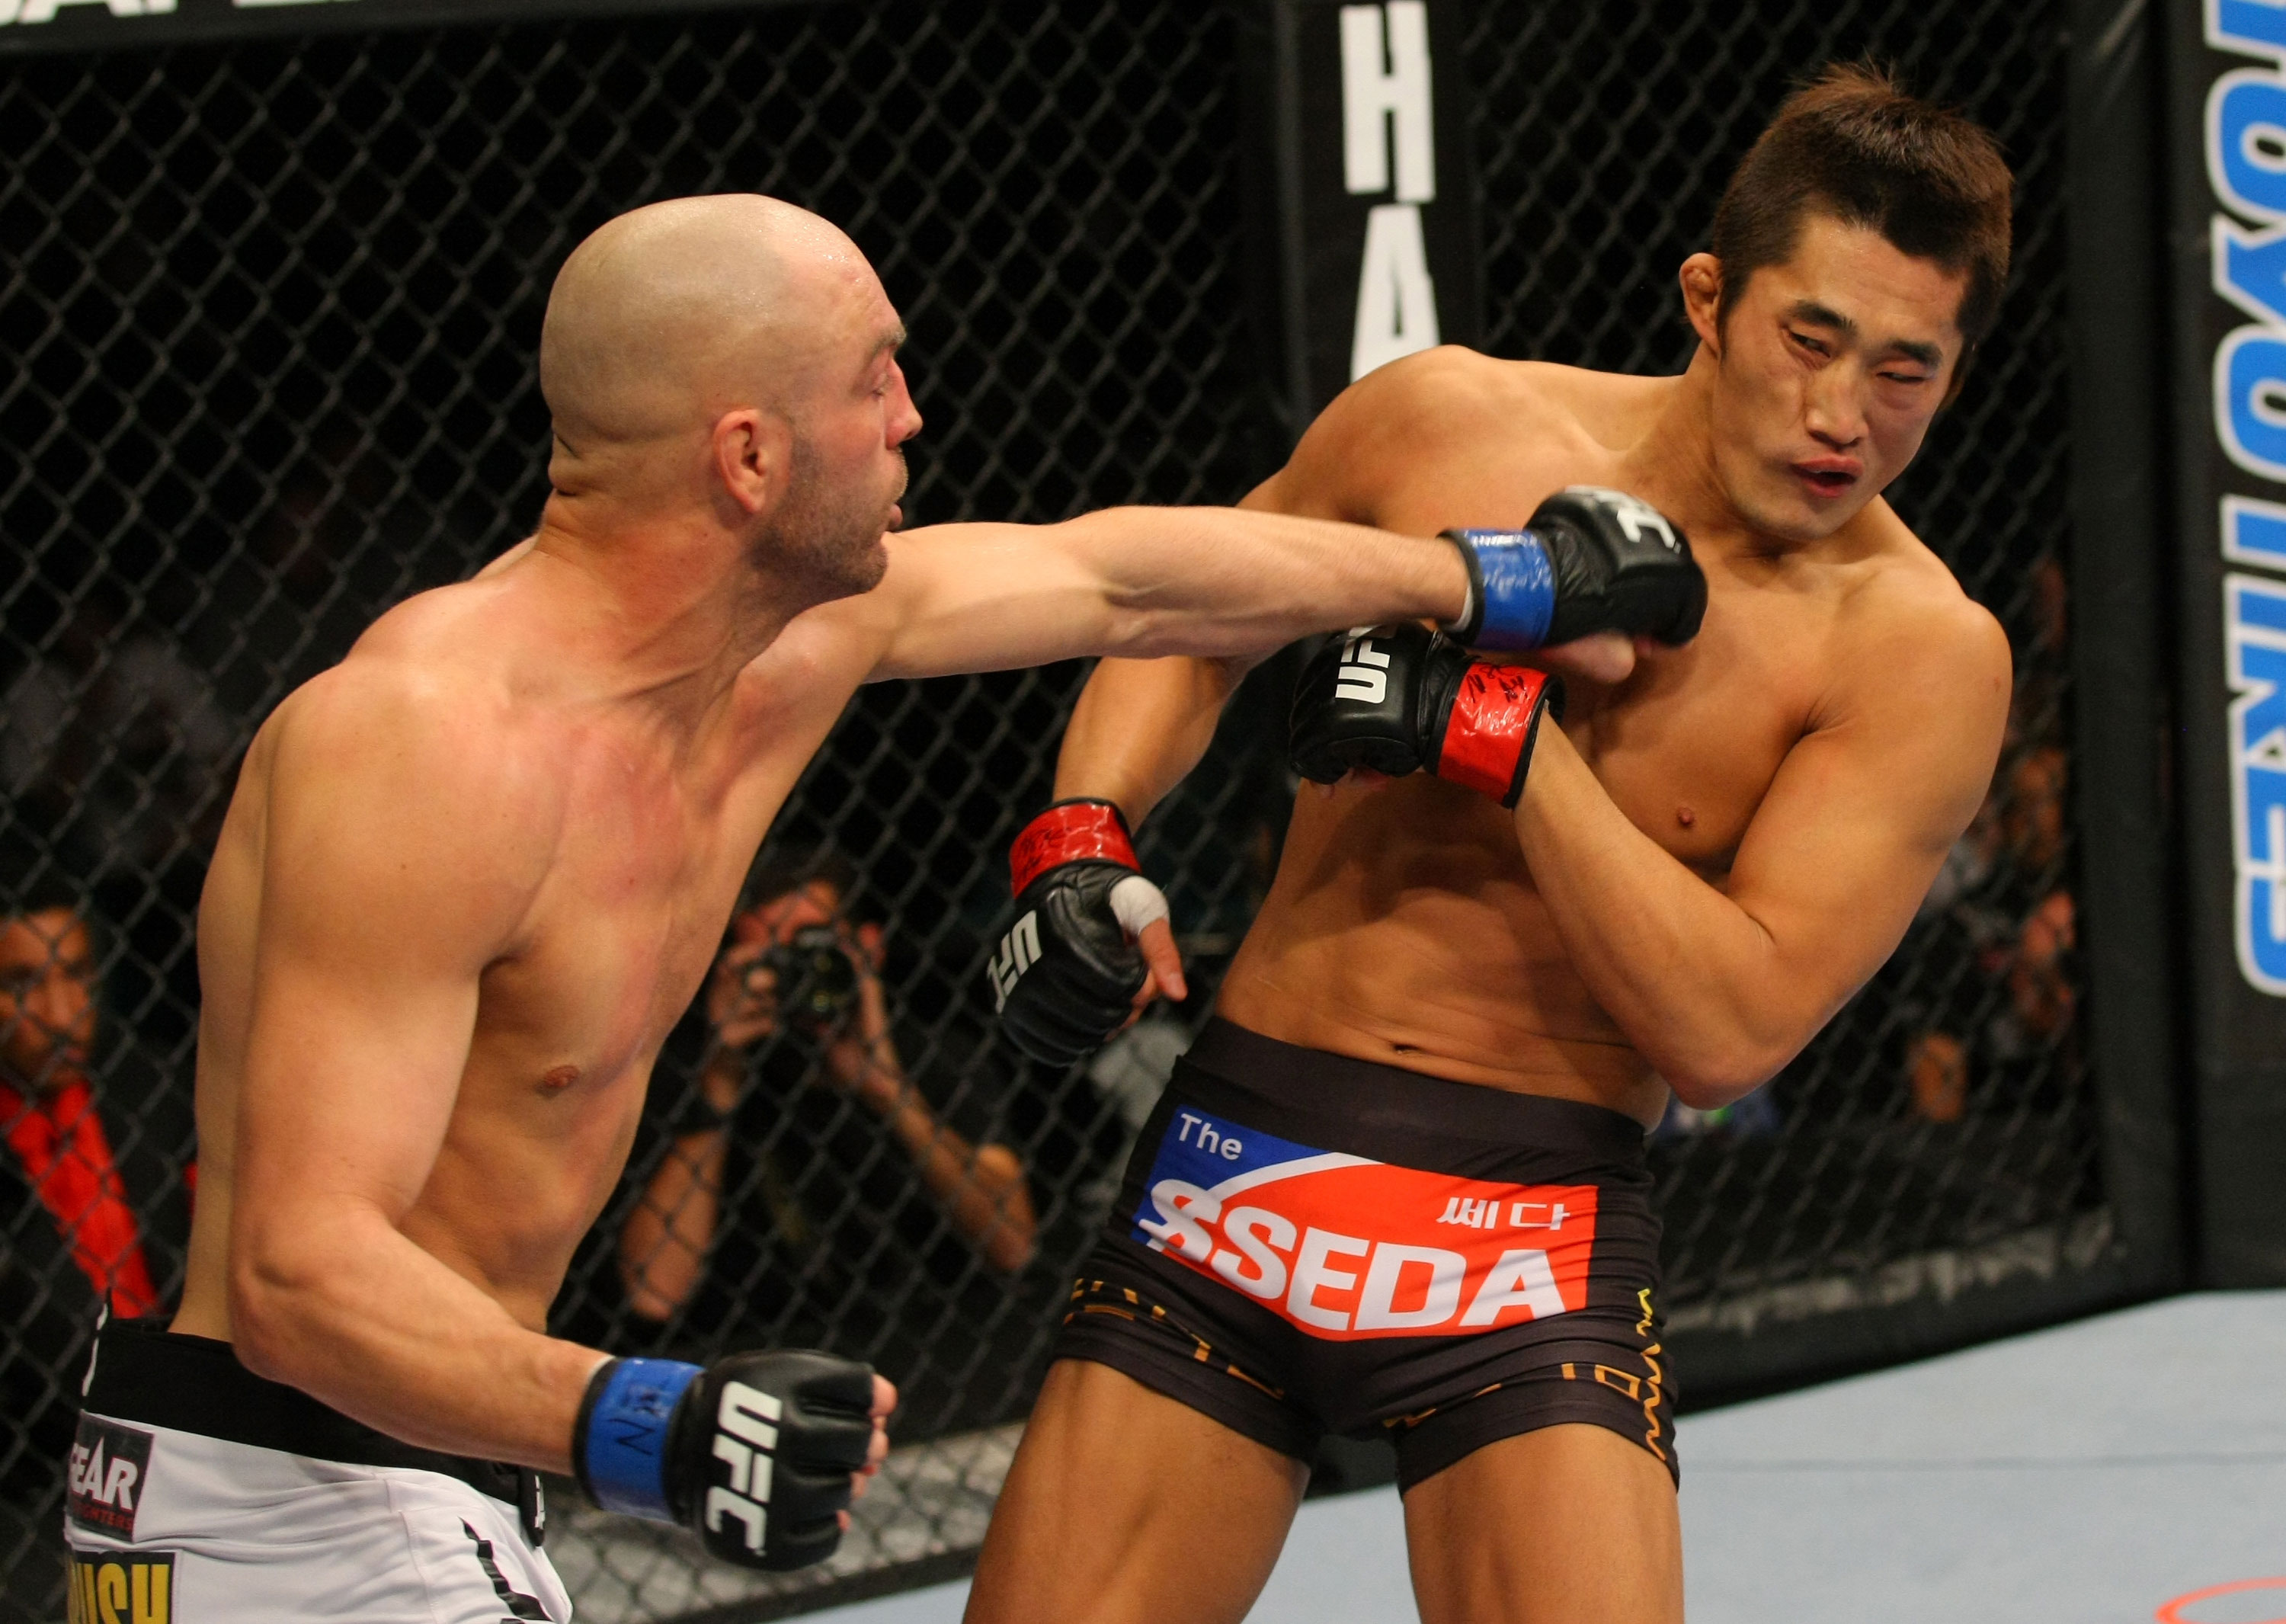 LAS VEGAS, NV - DECEMBER 30:  Sean Pierson (left) punches Dong Hyun Kim (right) during the UFC 141 event at the MGM Grand Garden Arena on December 30, 2011 in Las Vegas, Nevada.  (Photo by Donald Miralle/Zuffa LLC/Zuffa LLC via Getty Images) *** Local Caption *** Sean Pierson; Dong Hyun Kim